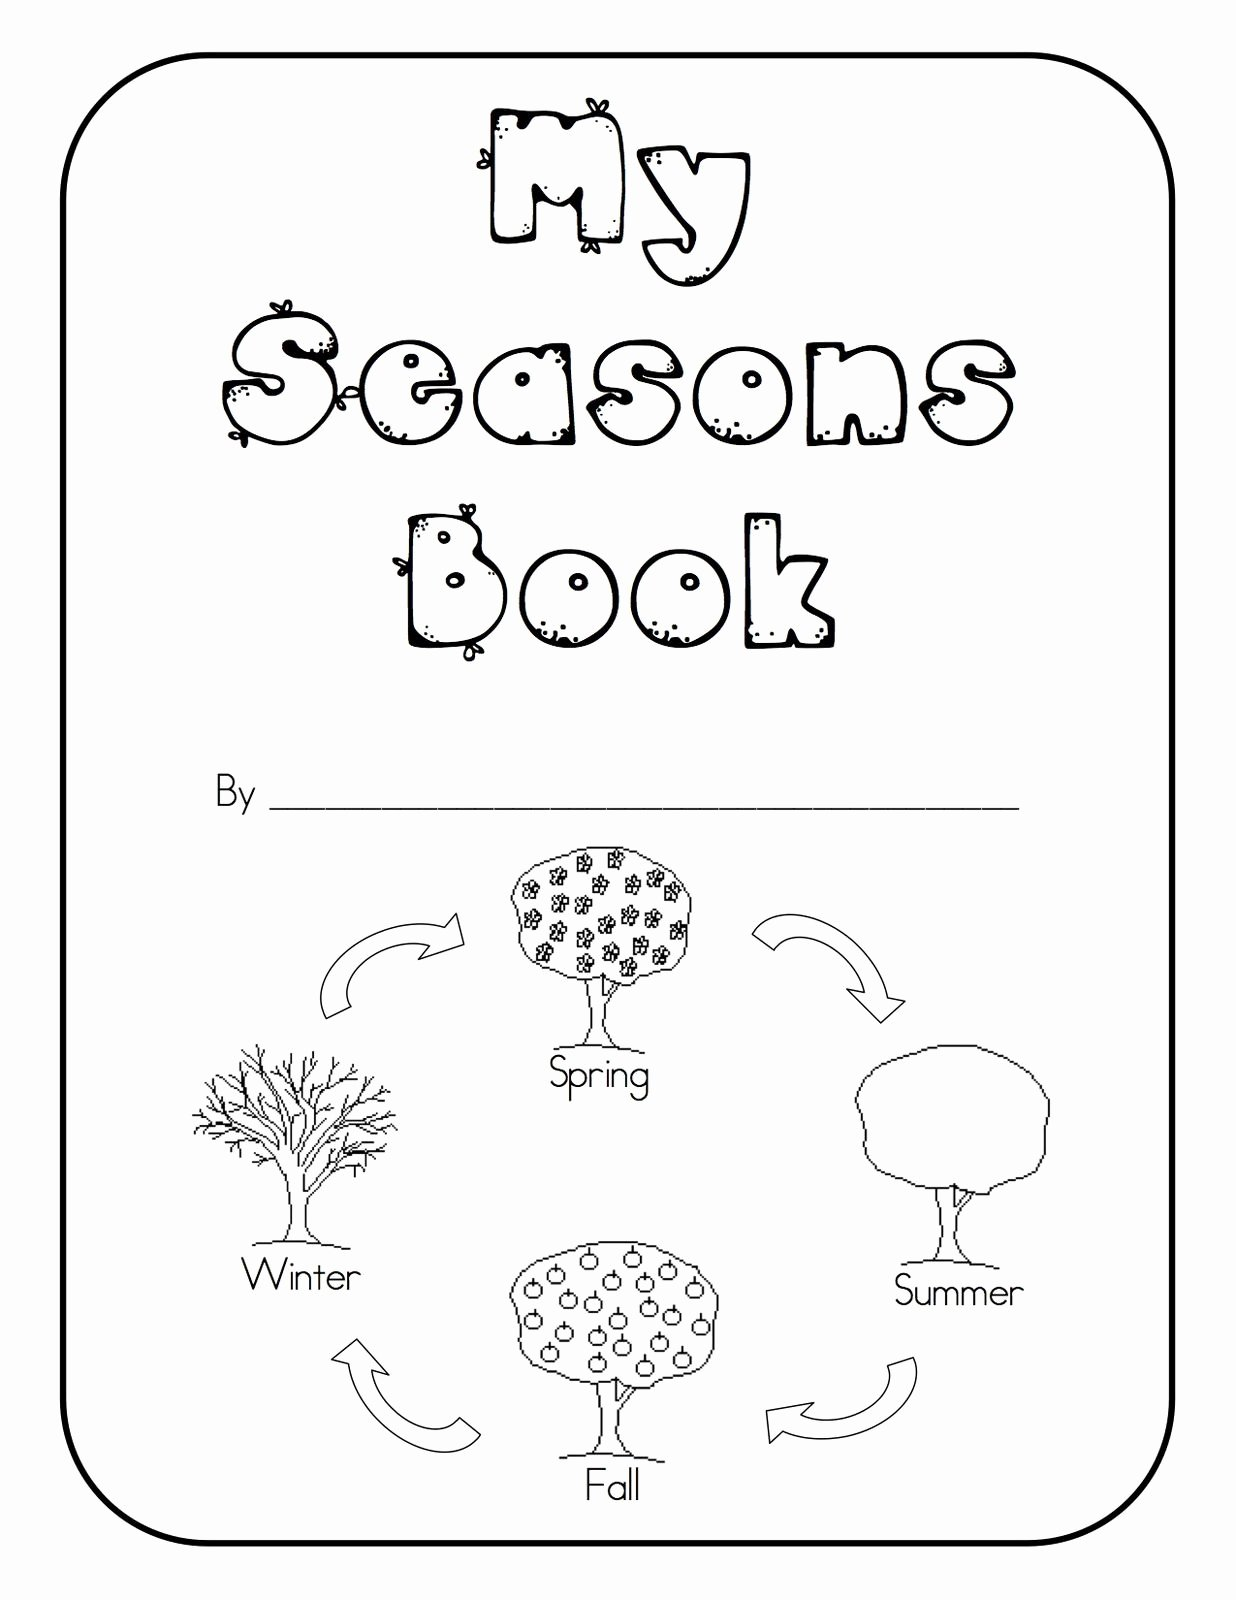 Spring themed Worksheets for Preschoolers New Seasons Kindergarten Books Spring themed Worksheets